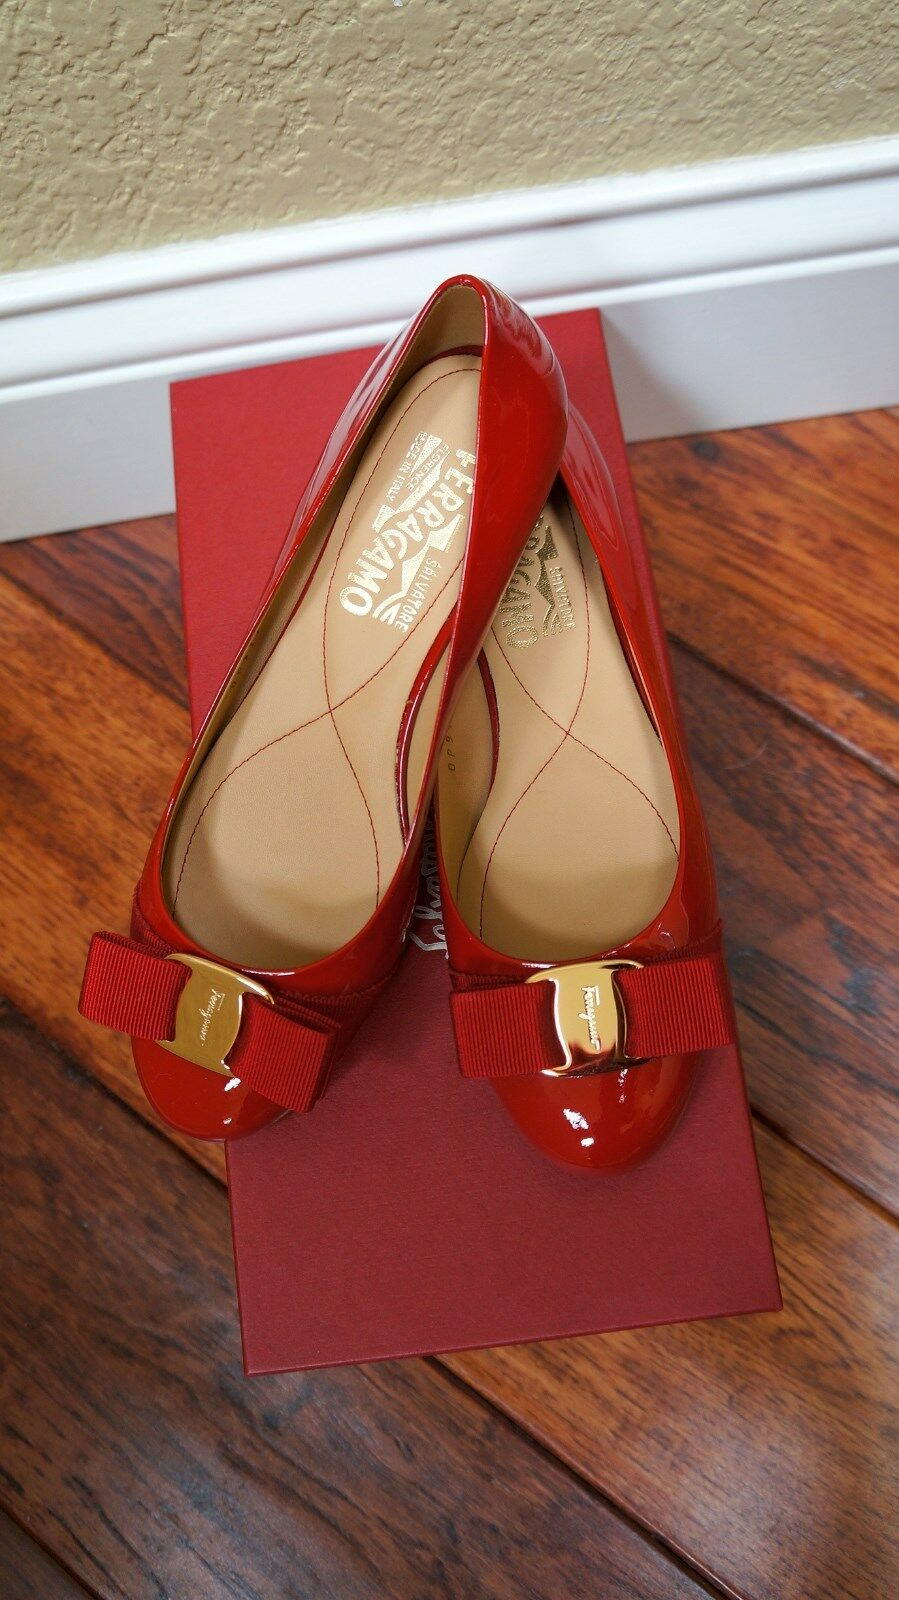 600 Ferragamo red Red gold Flats Bow NIB 5 5.5 6 6.5 7 7.5 8 8.5 9.5 10  C